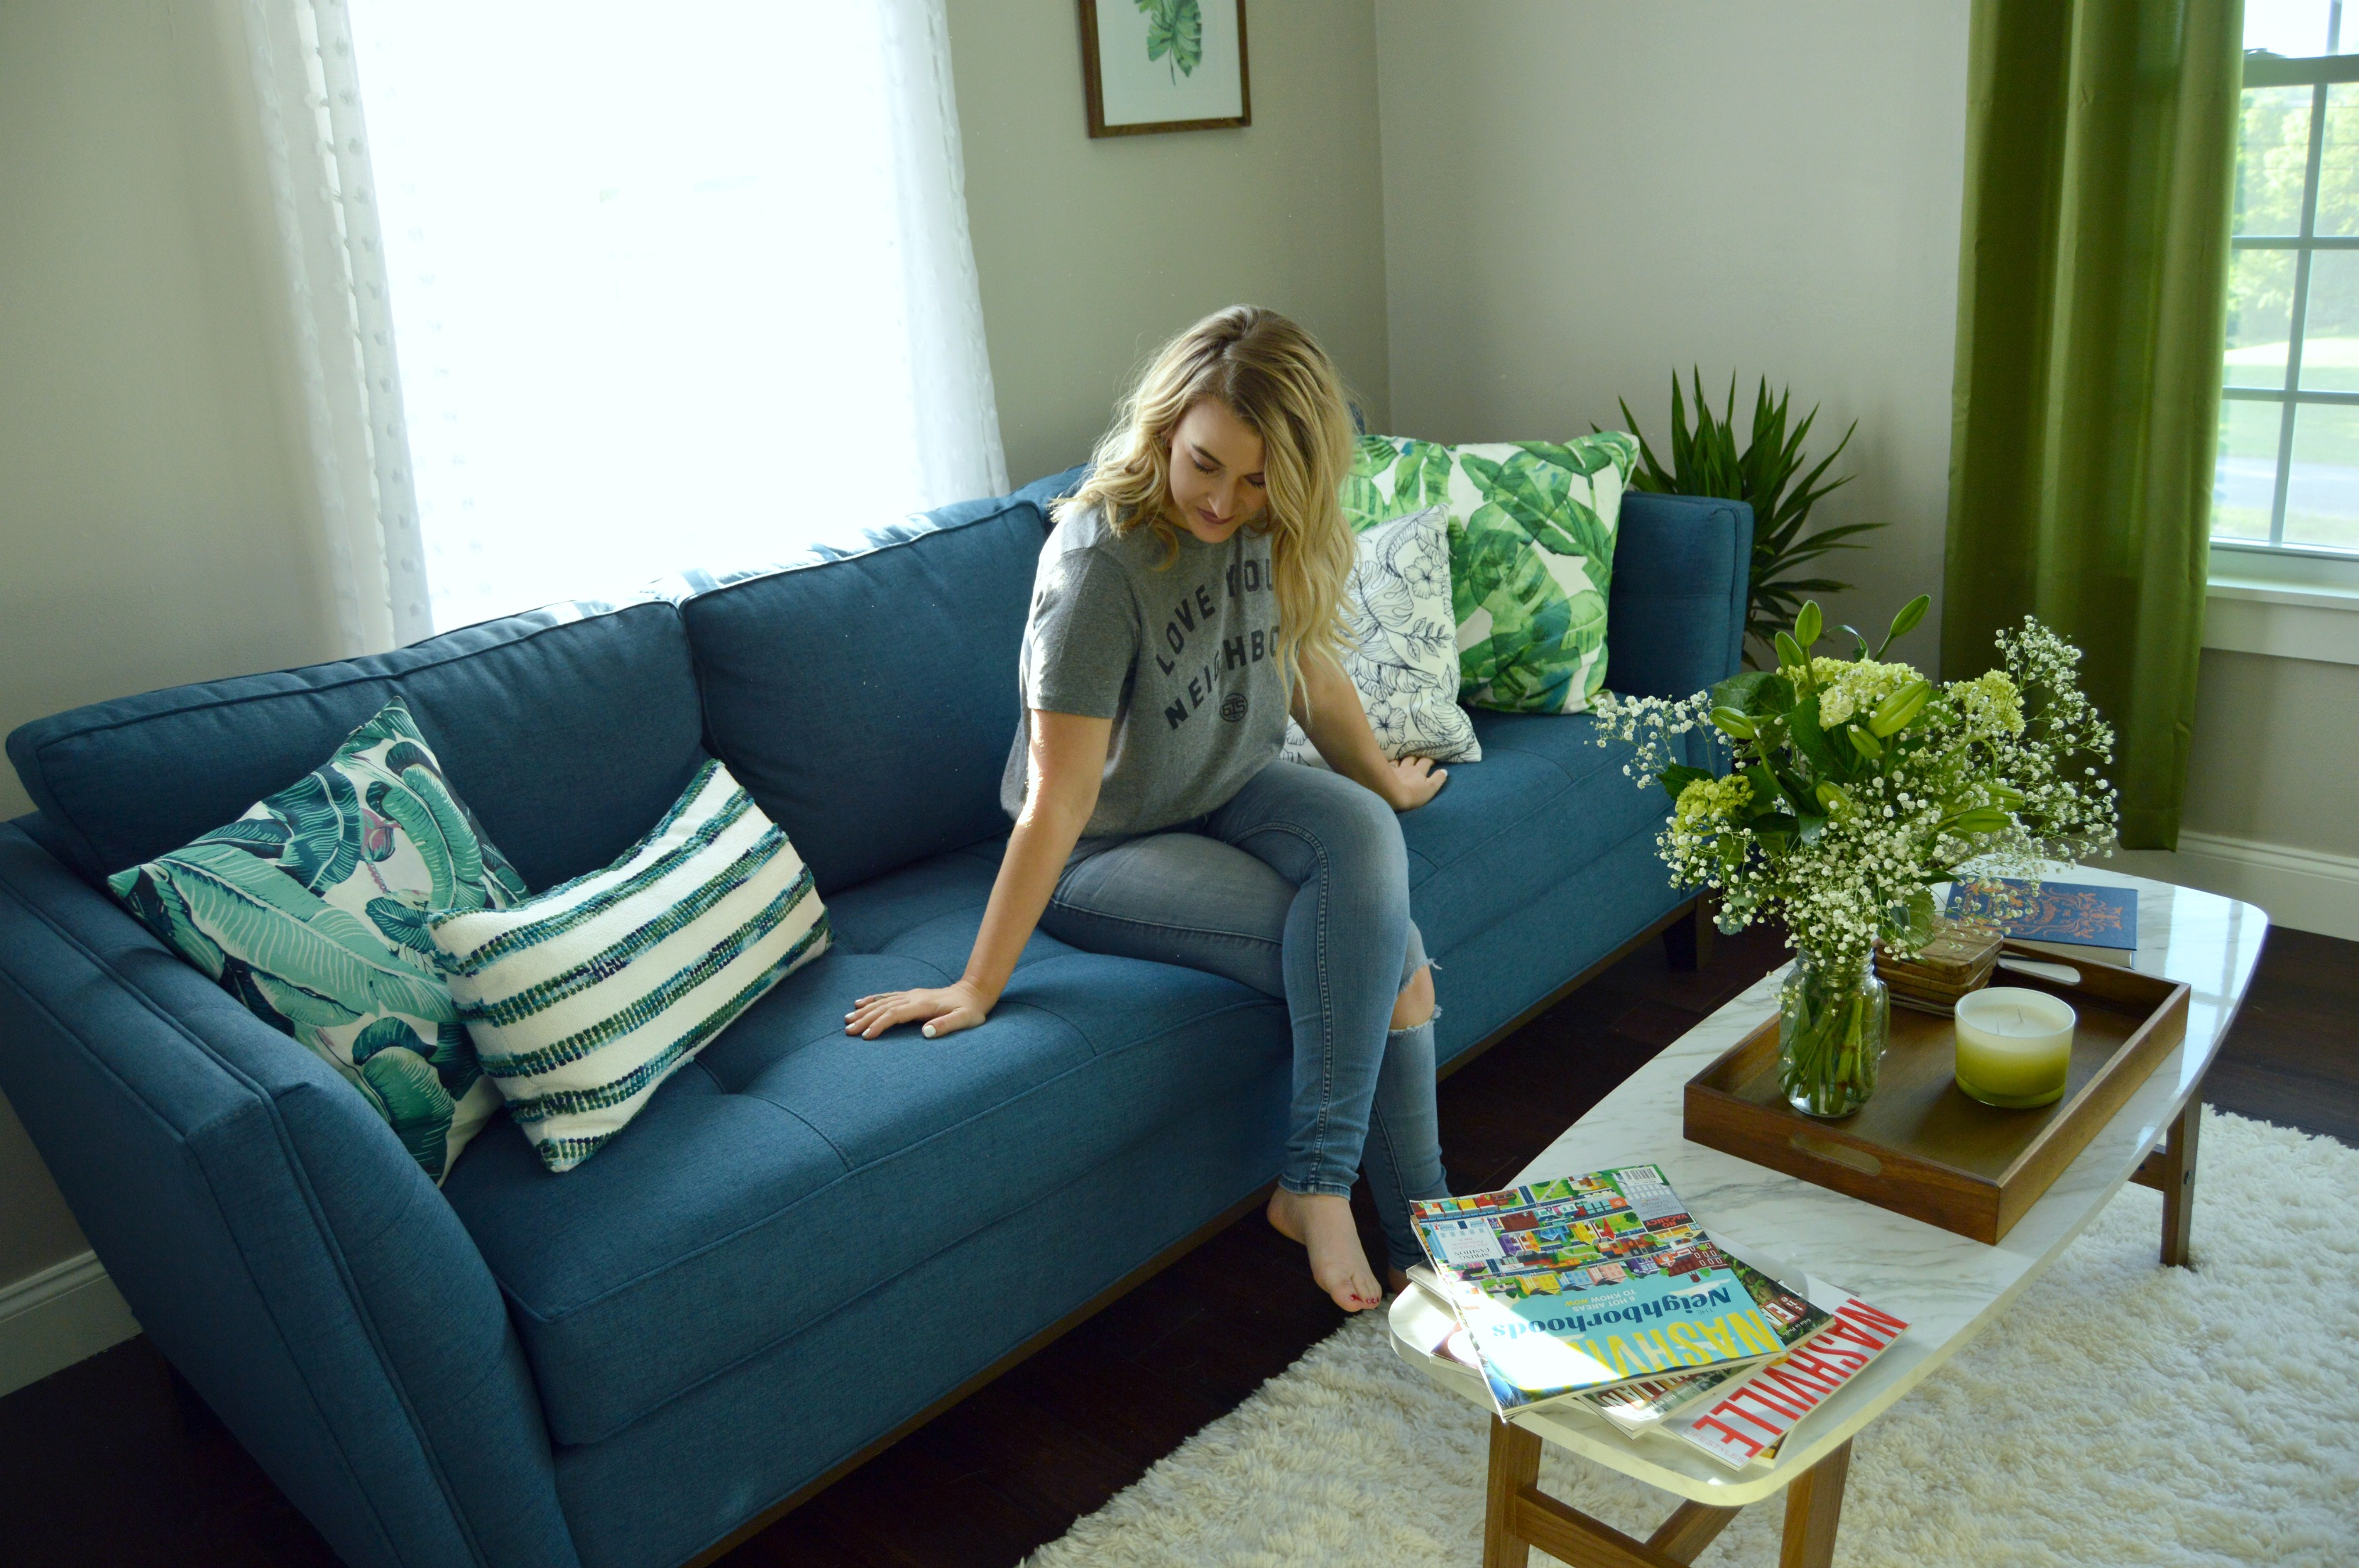 redecorating made simple